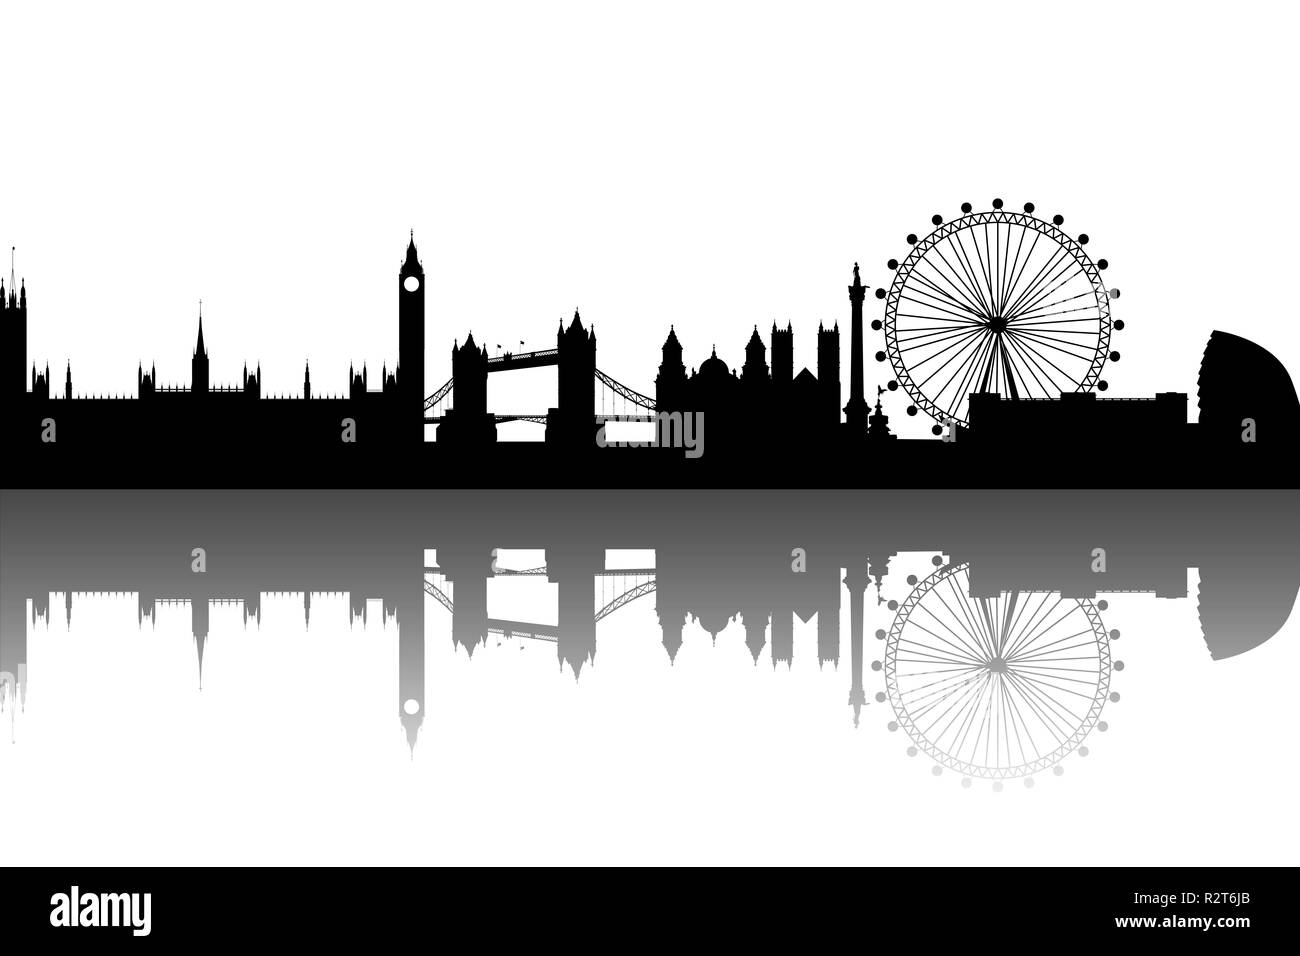 london abstract - Stock Image